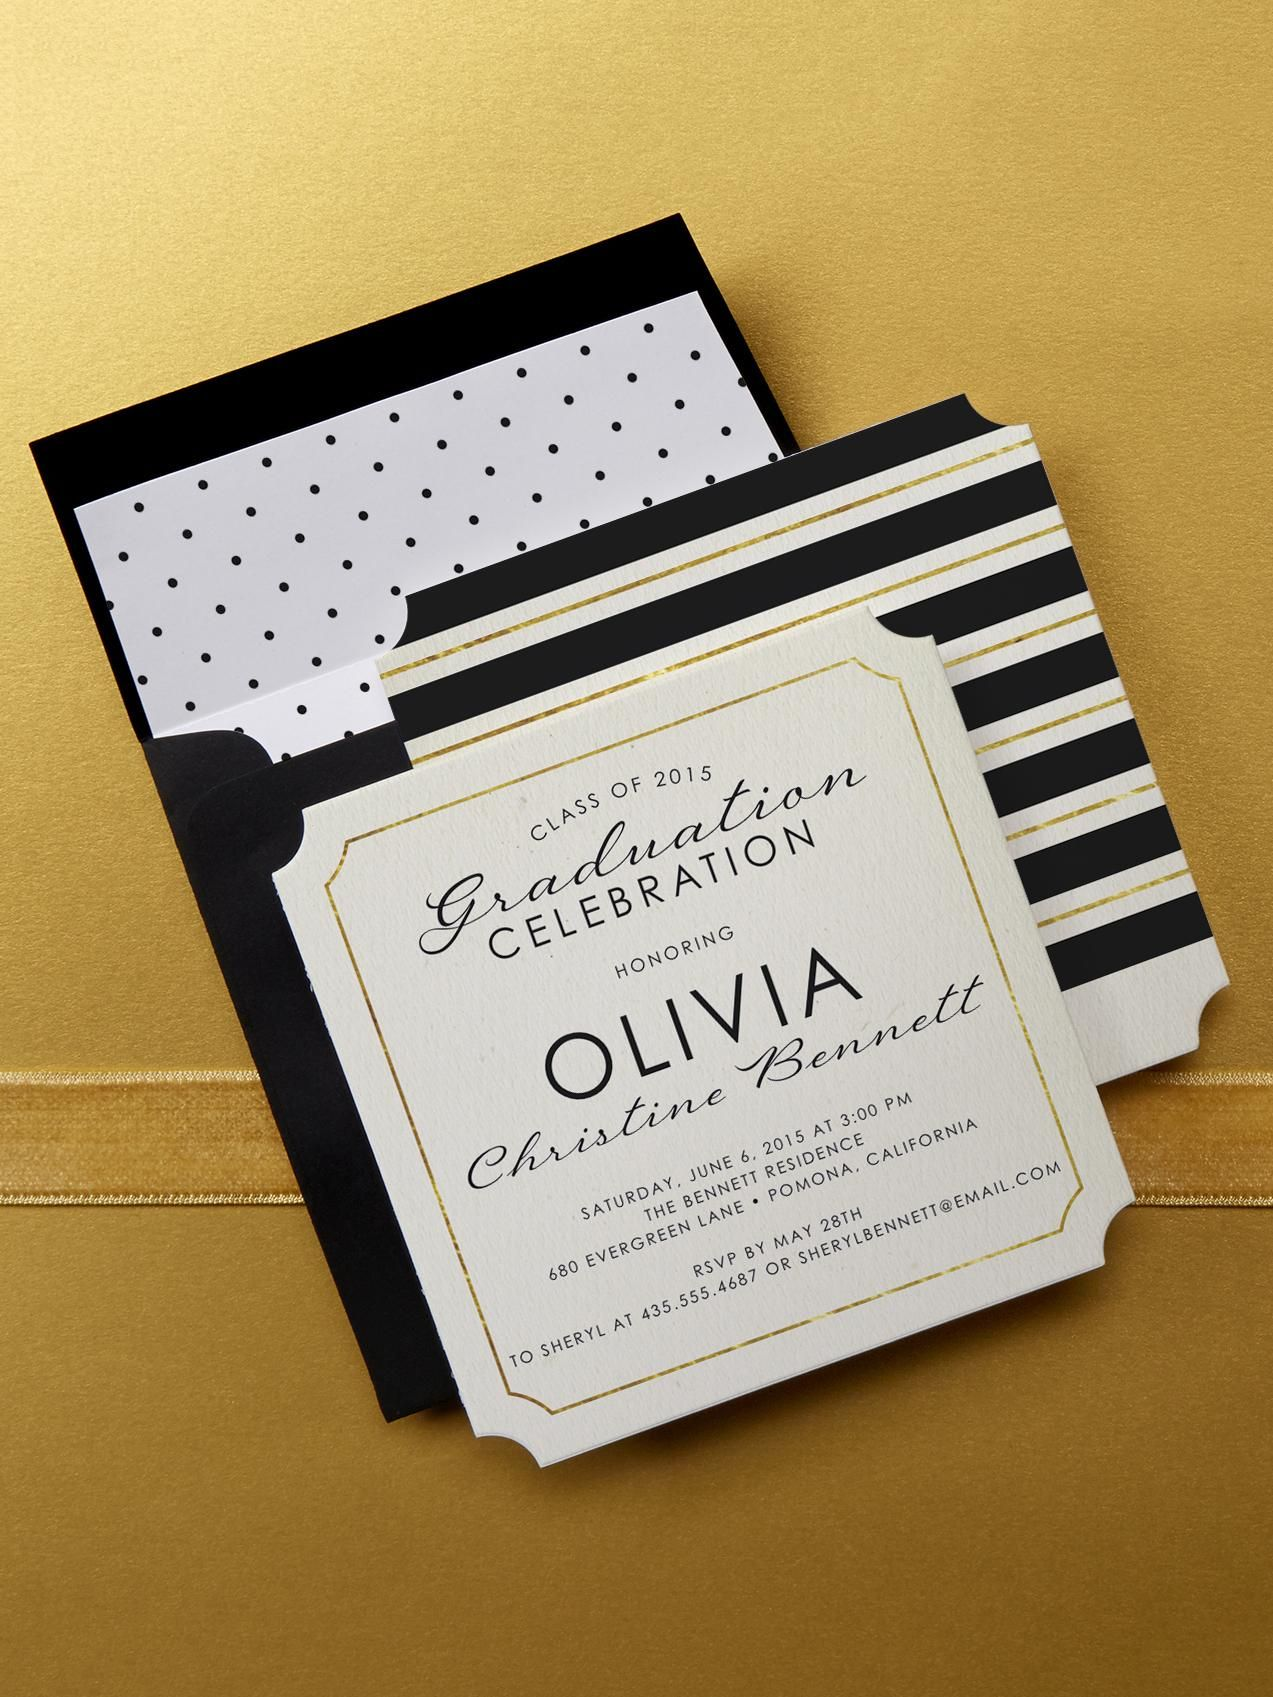 choose a linen graduation invitation design at tiny prints to make your graduation feel special this 2015 celebrate your grad